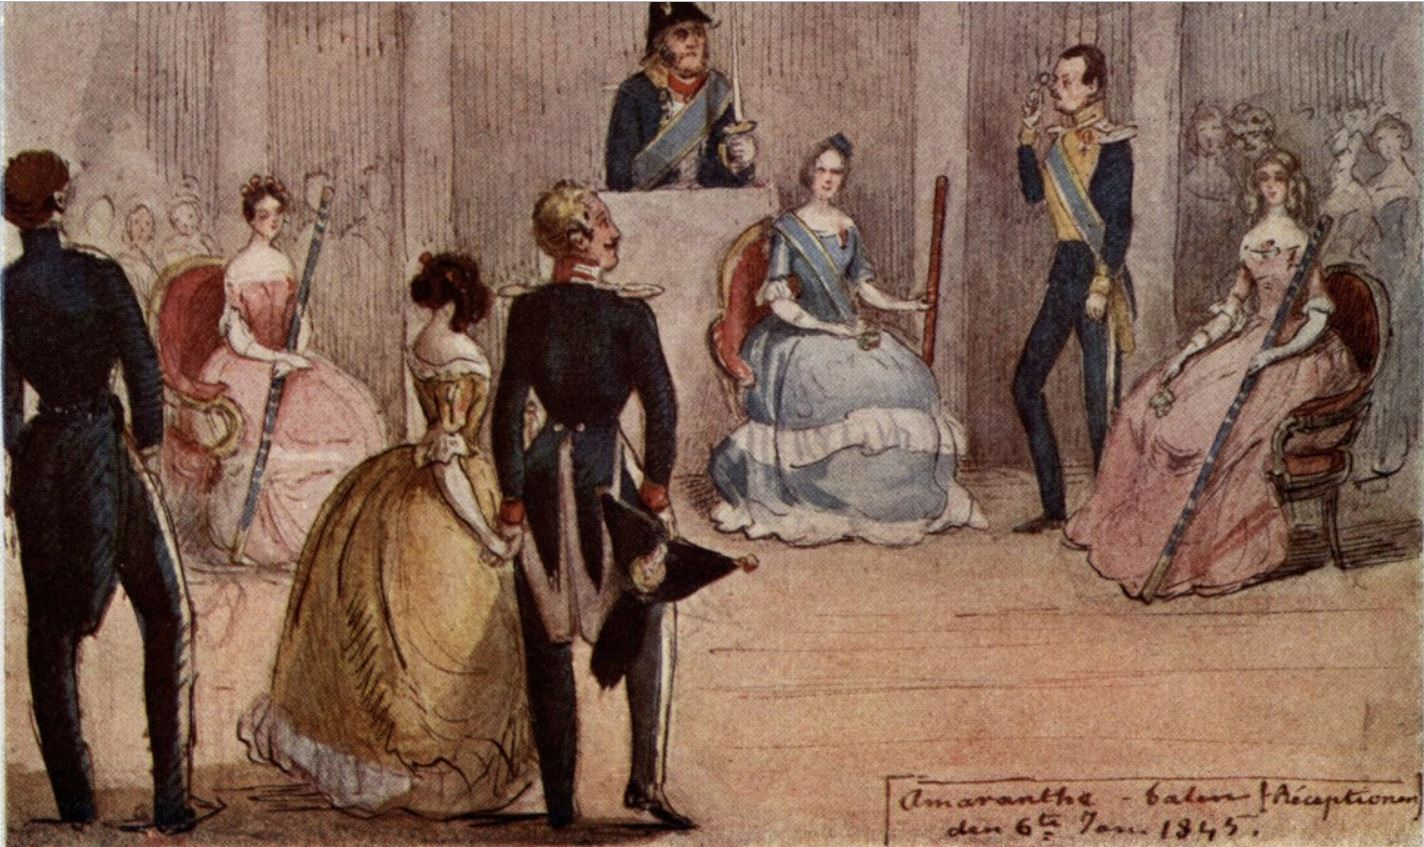 The Amaranth Ball, 6 January 1845. Painting by Fritz von Dardel. Knut Bergenstråhle is the young lieutenant in the middle.